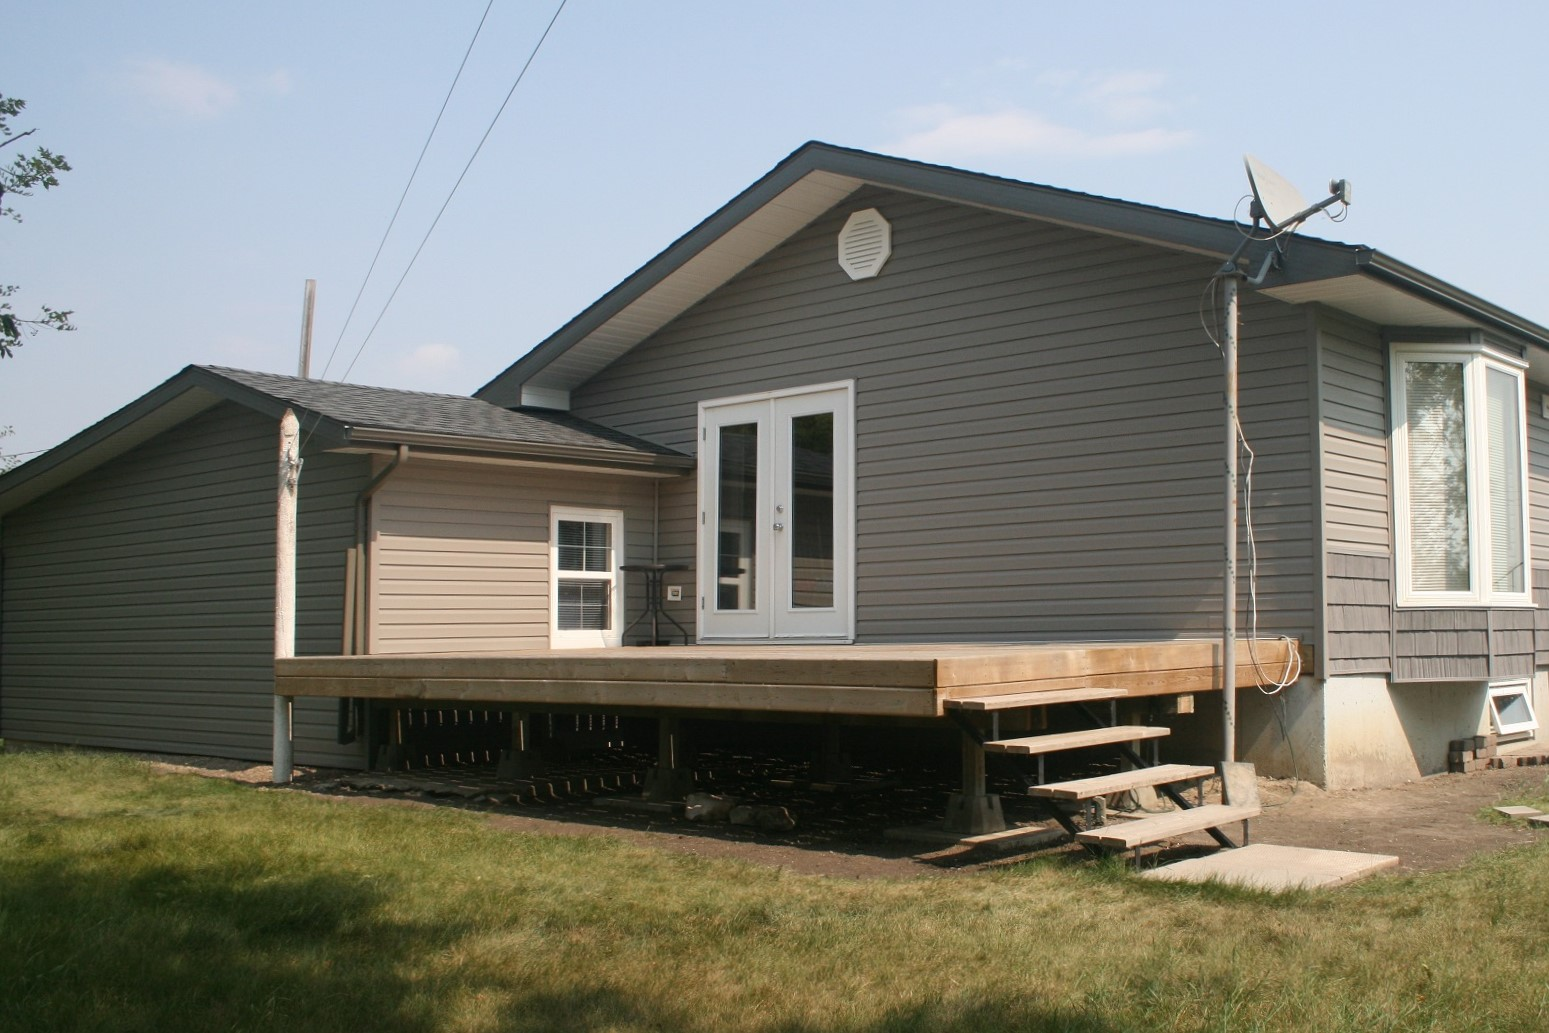 Exterior renovation on a house with hail damage. - Image 10